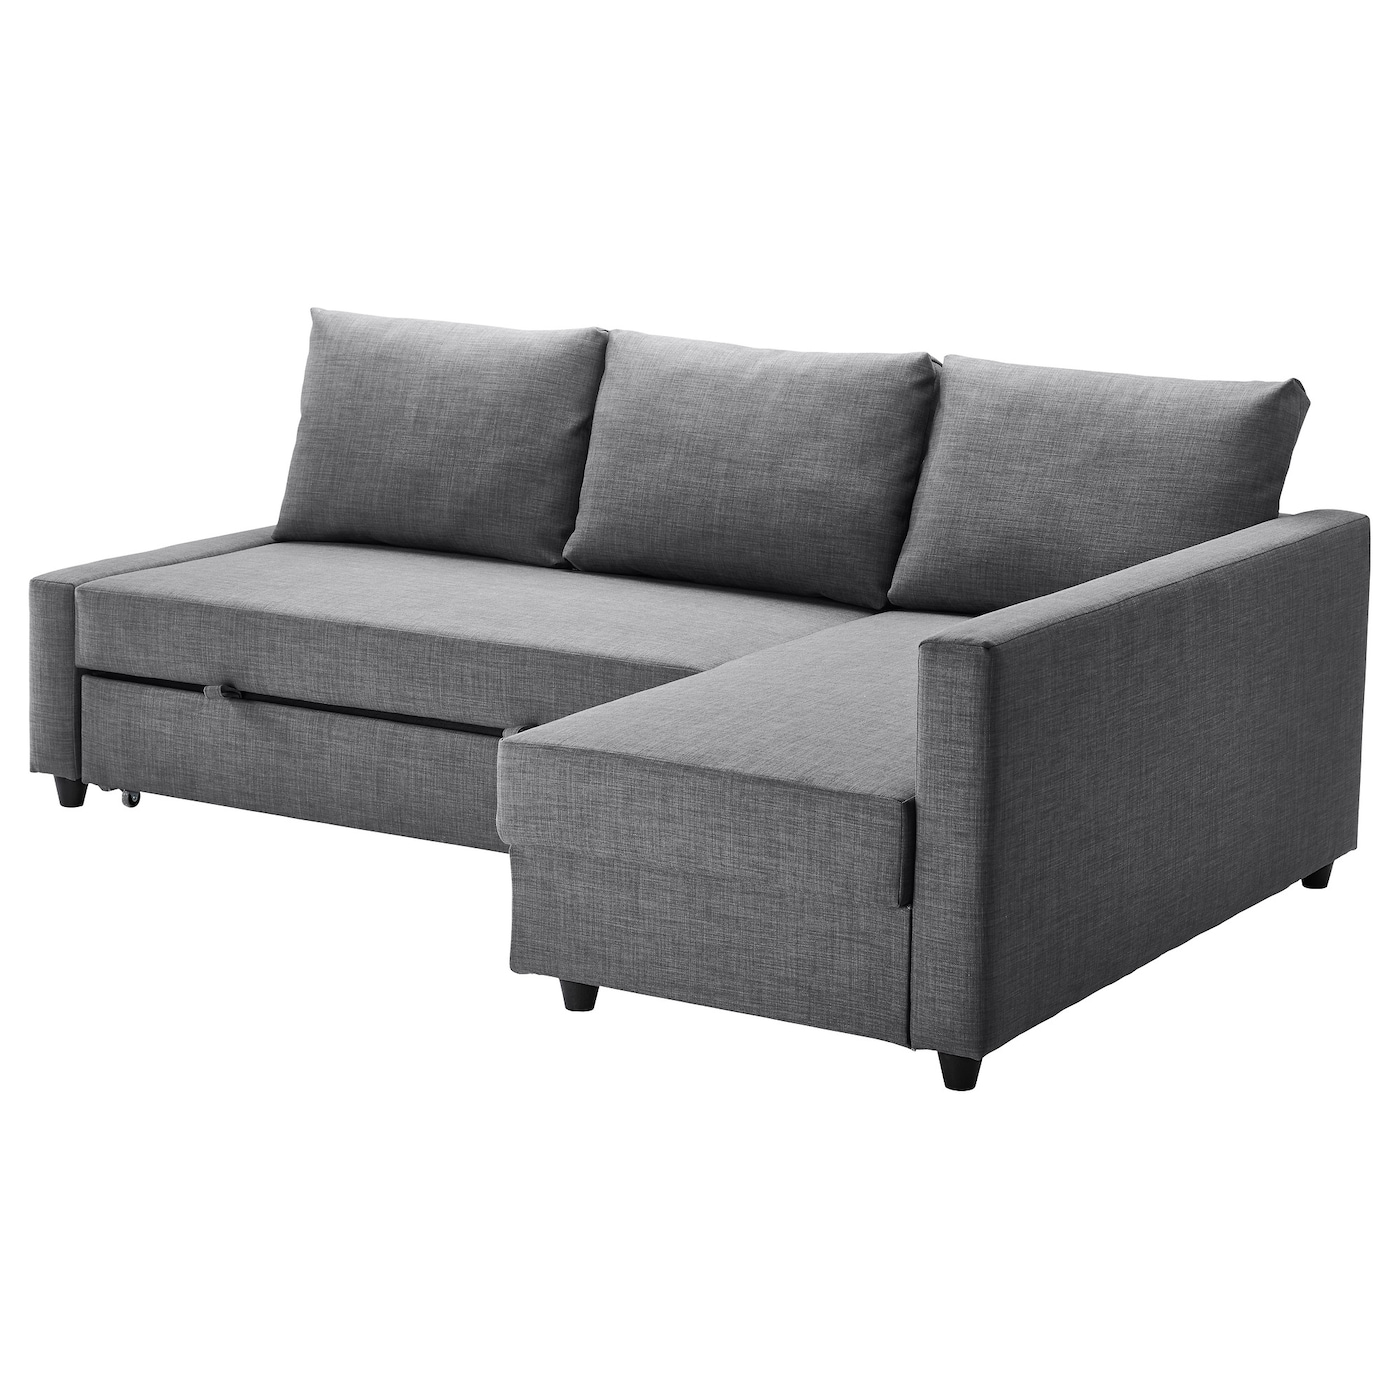 FRIHETEN - Corner sofa-bed with storage, Skiftebo dark grey 429€ / pieces